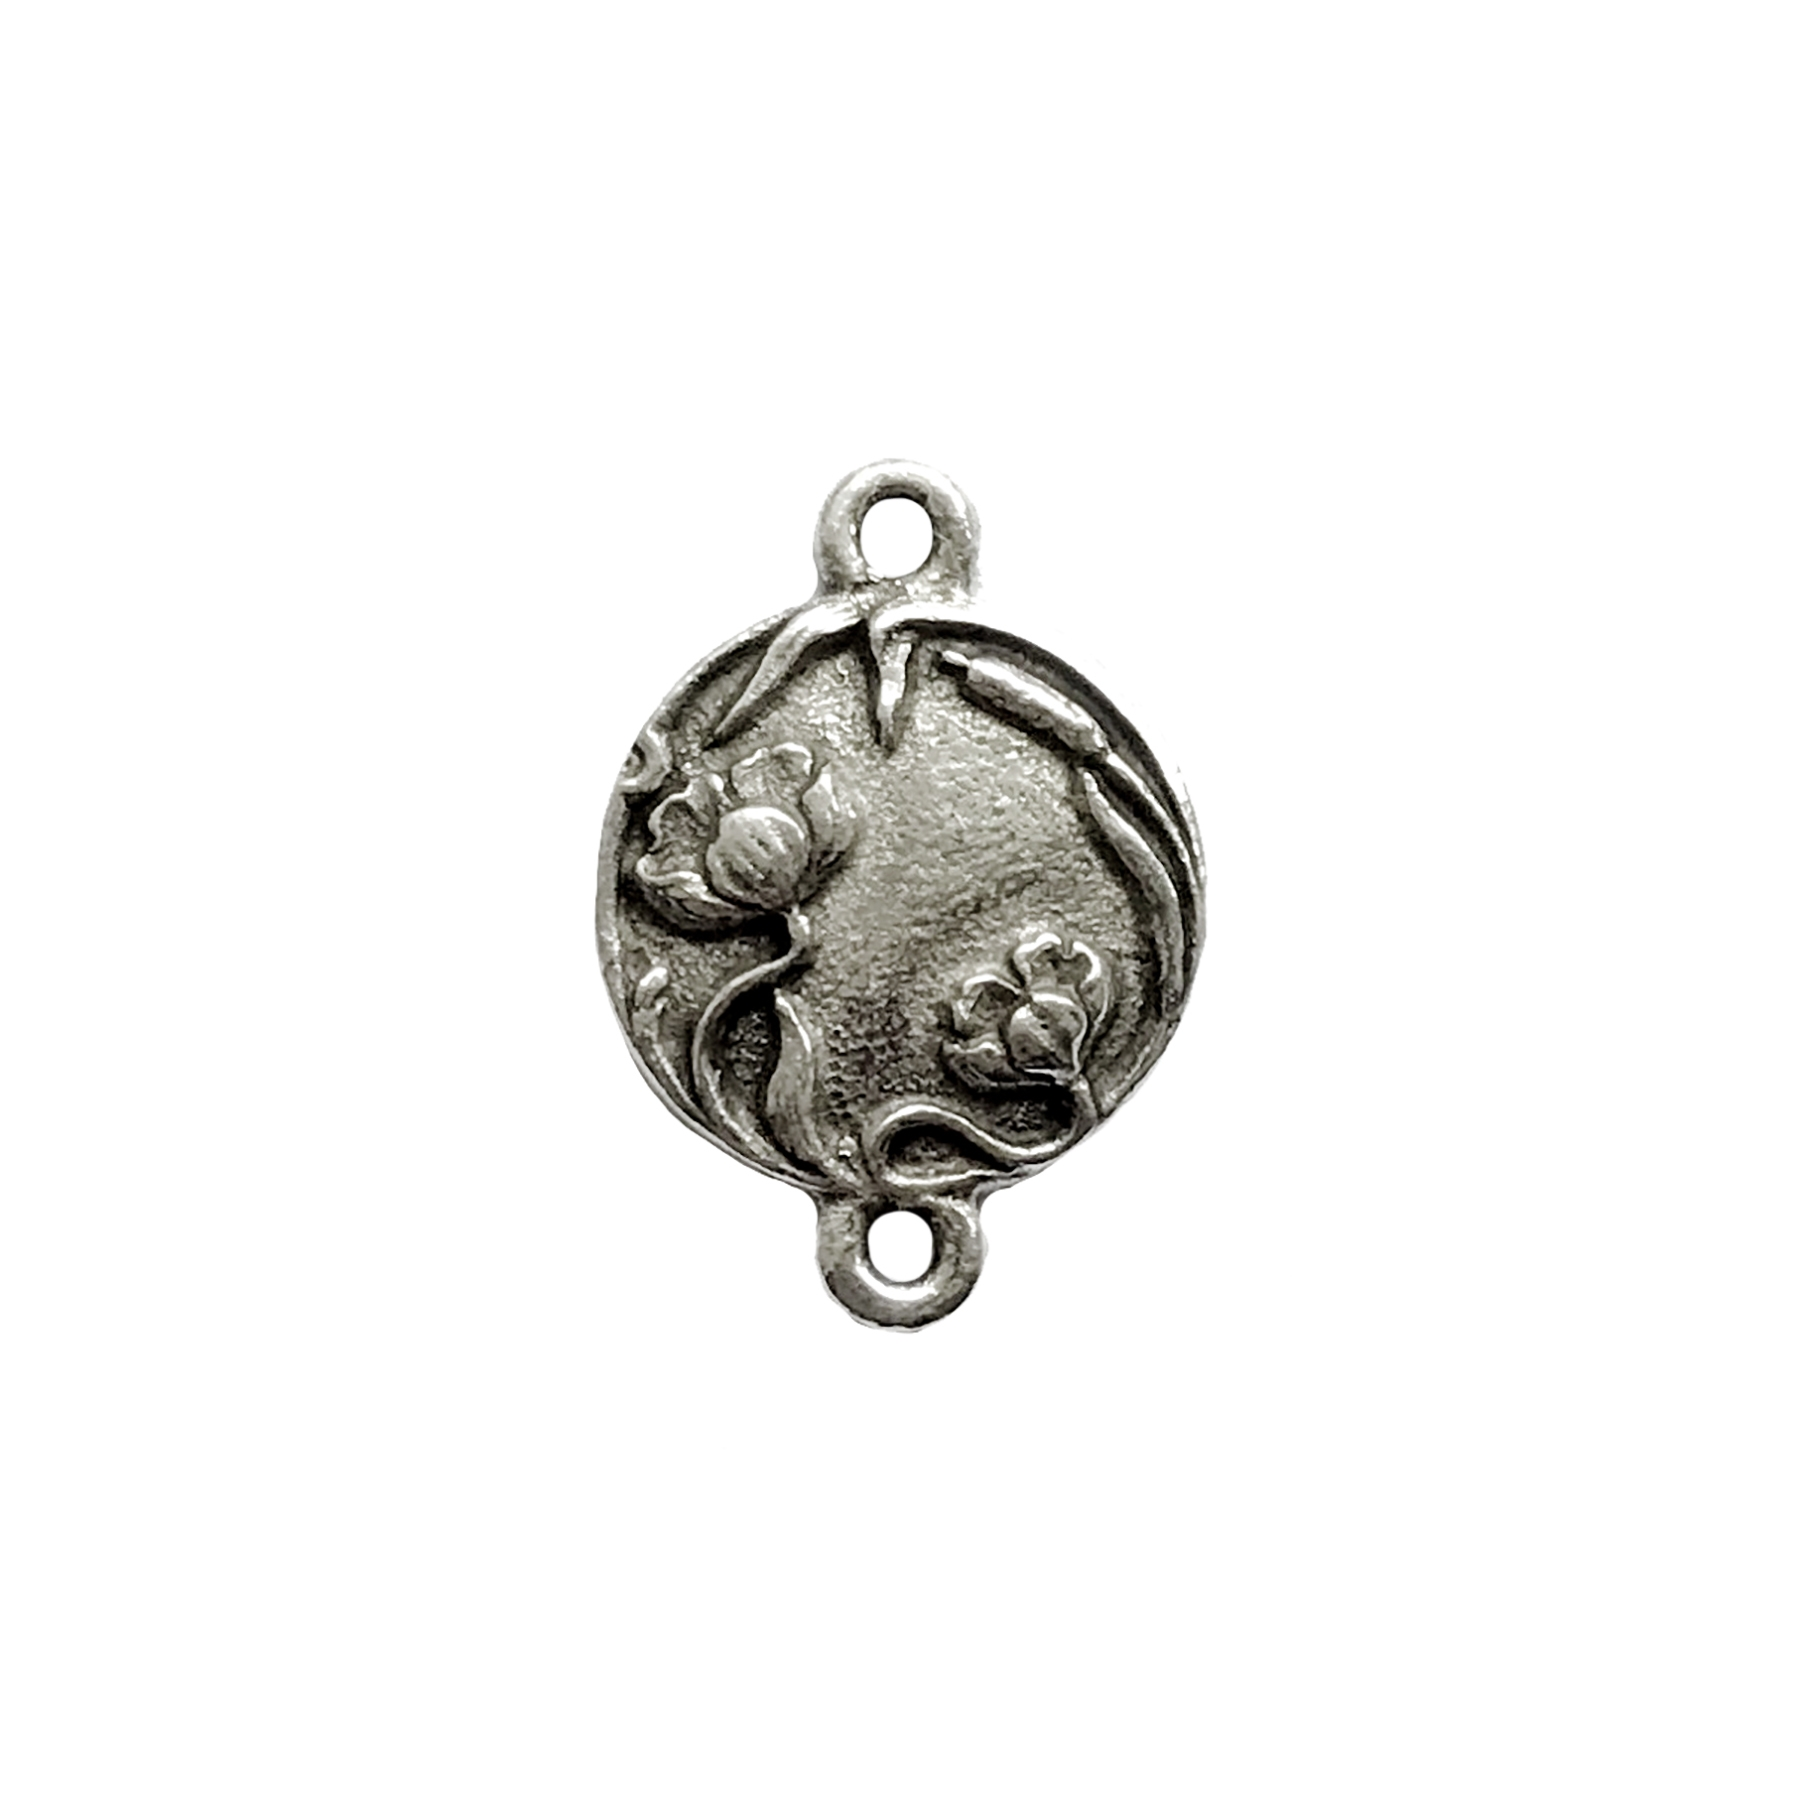 old silver pewter, floral connector, ear drop, pendant, vintage, B'sue by 1928, lead free pewter castings, cast pewter jewelry findings, us made, 1928 Company, 1928 jewelry, B'sue Boutiques, 21x15mm, antique silver, silver, old silver, 02253